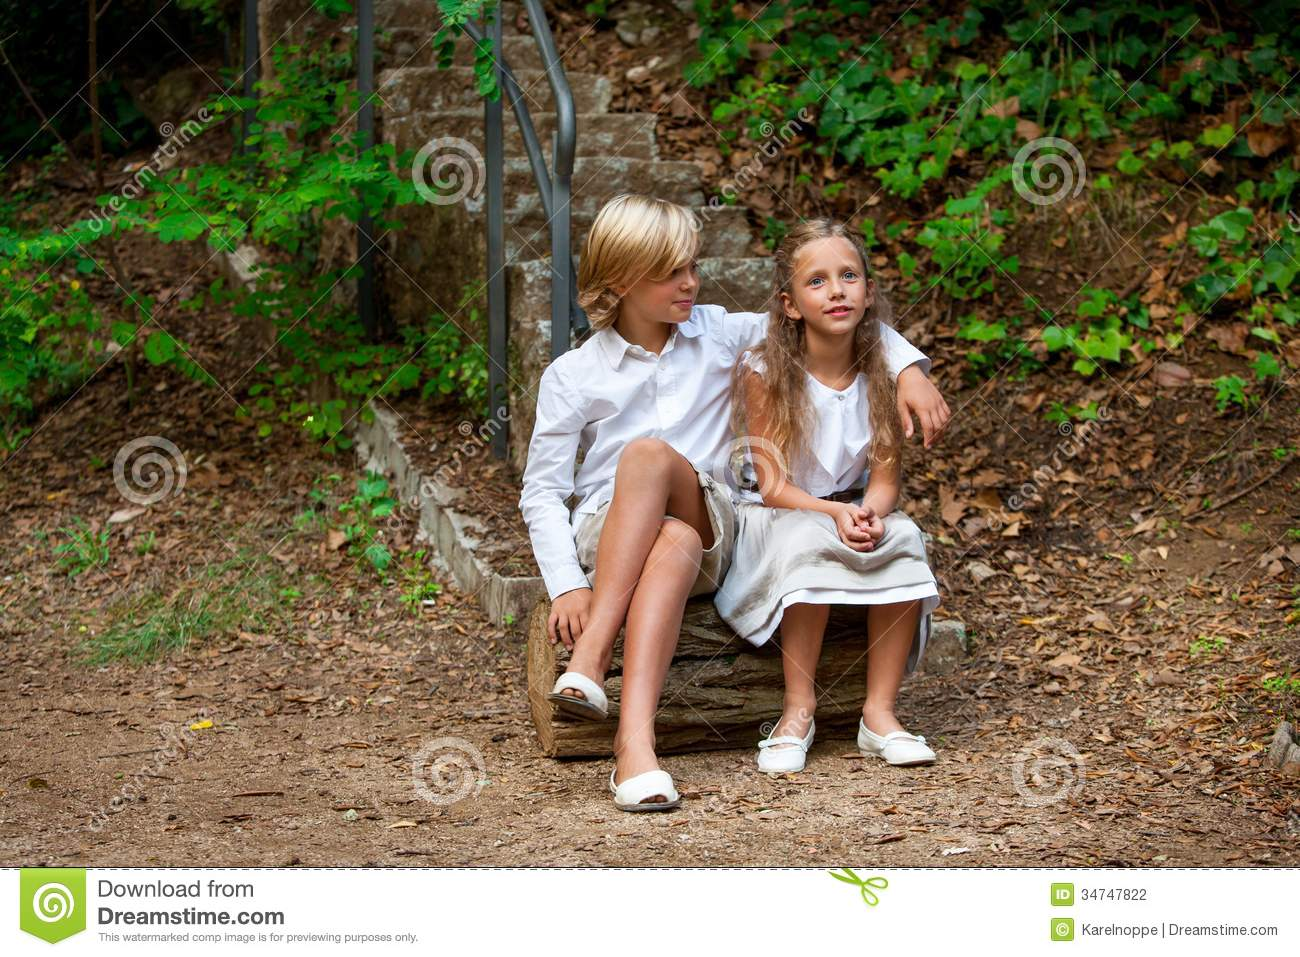 Boy And Girl Sitting On Log In Woods Stock Photography -4094